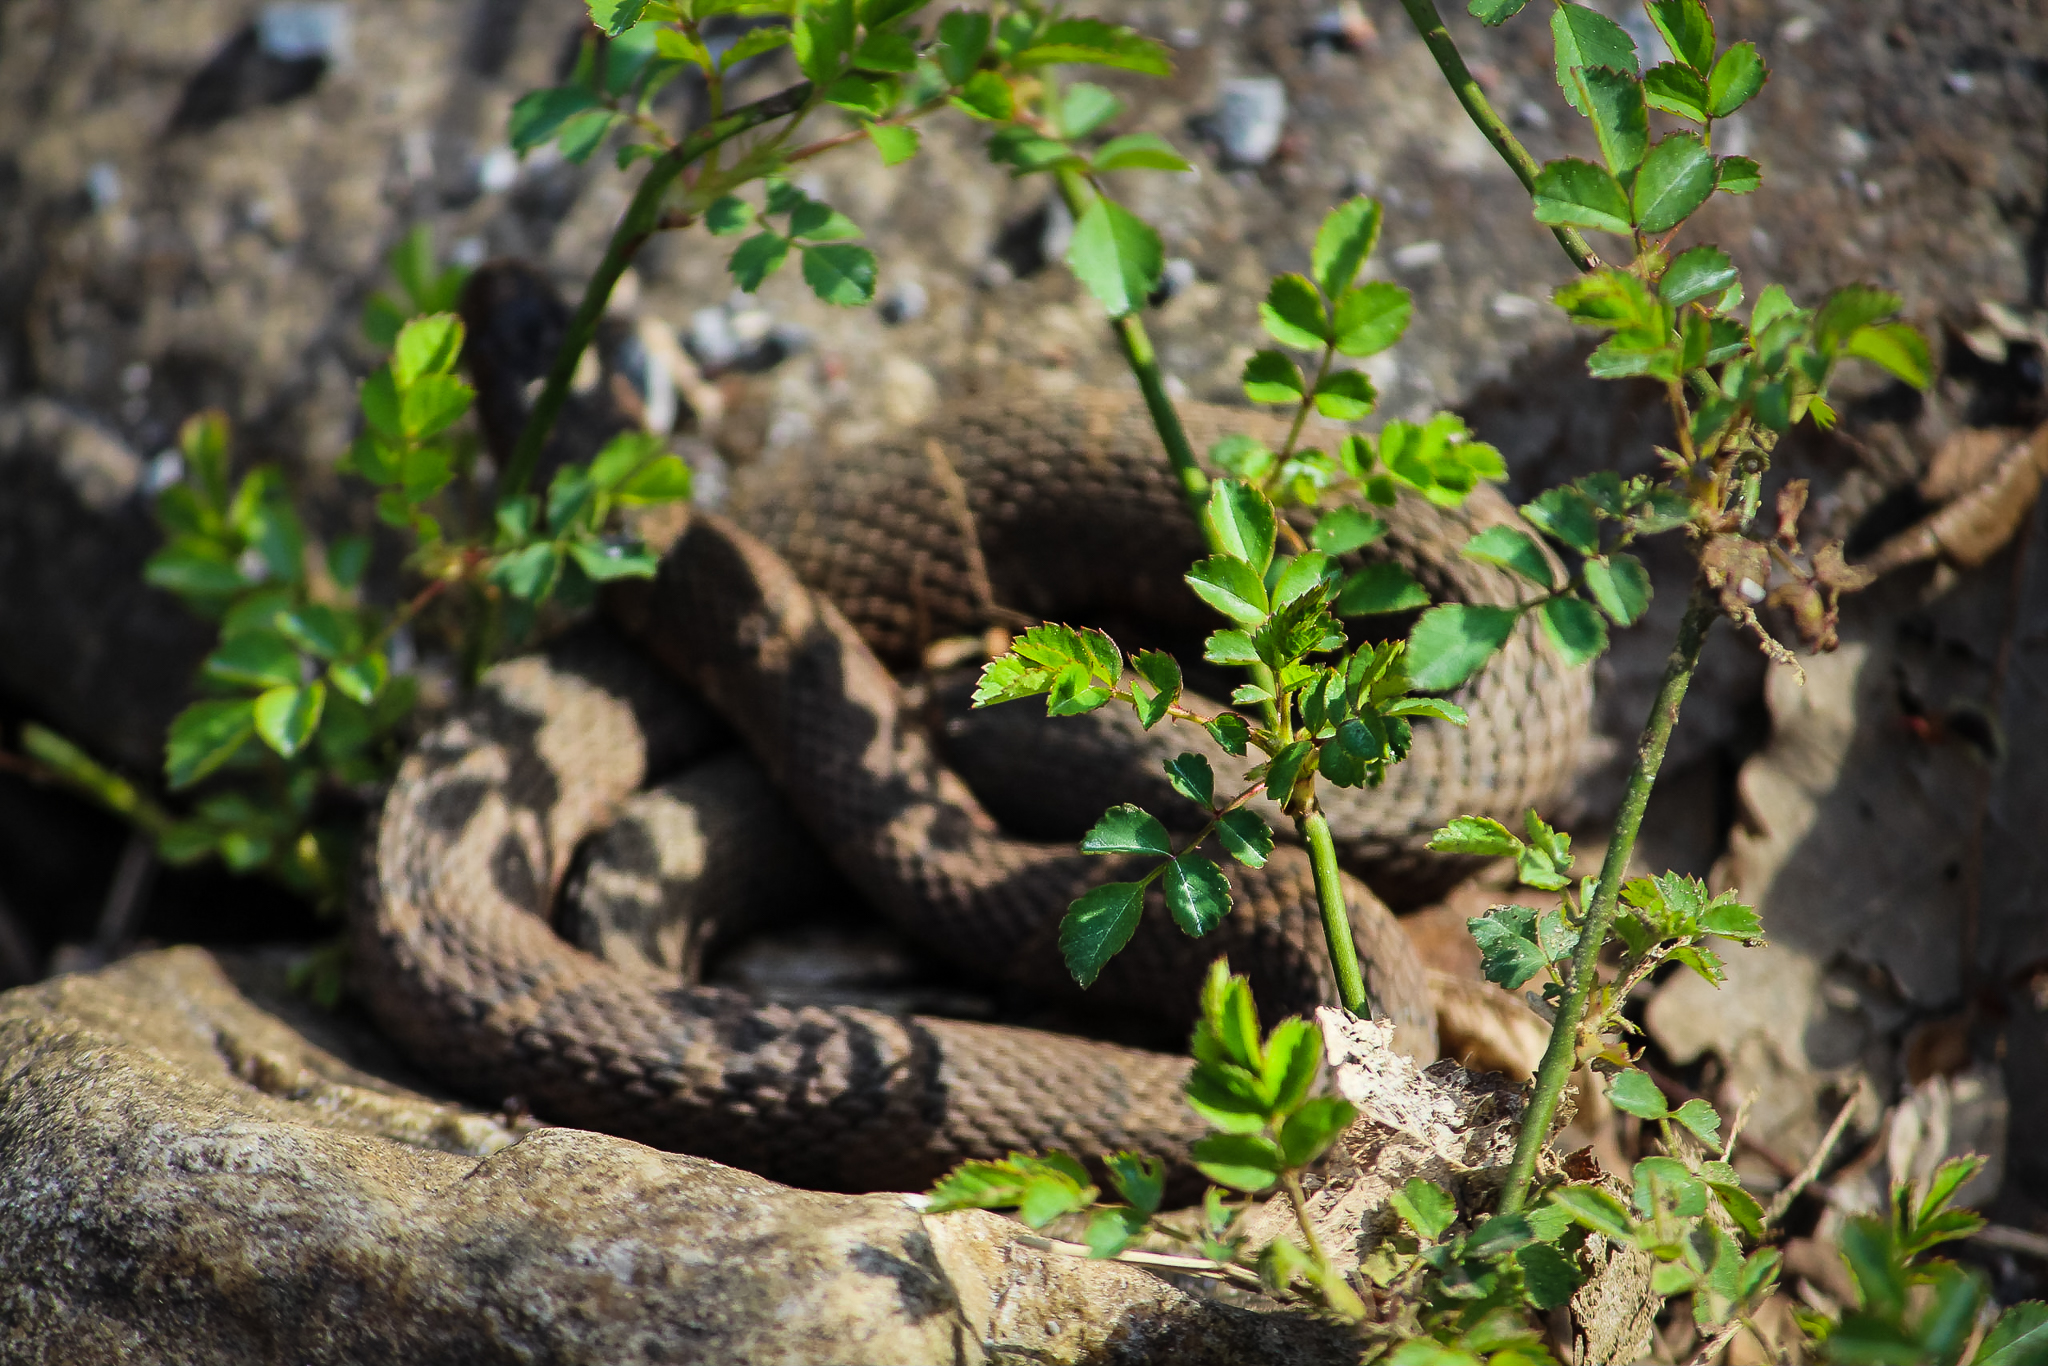 Snake at Sycamore Shoals